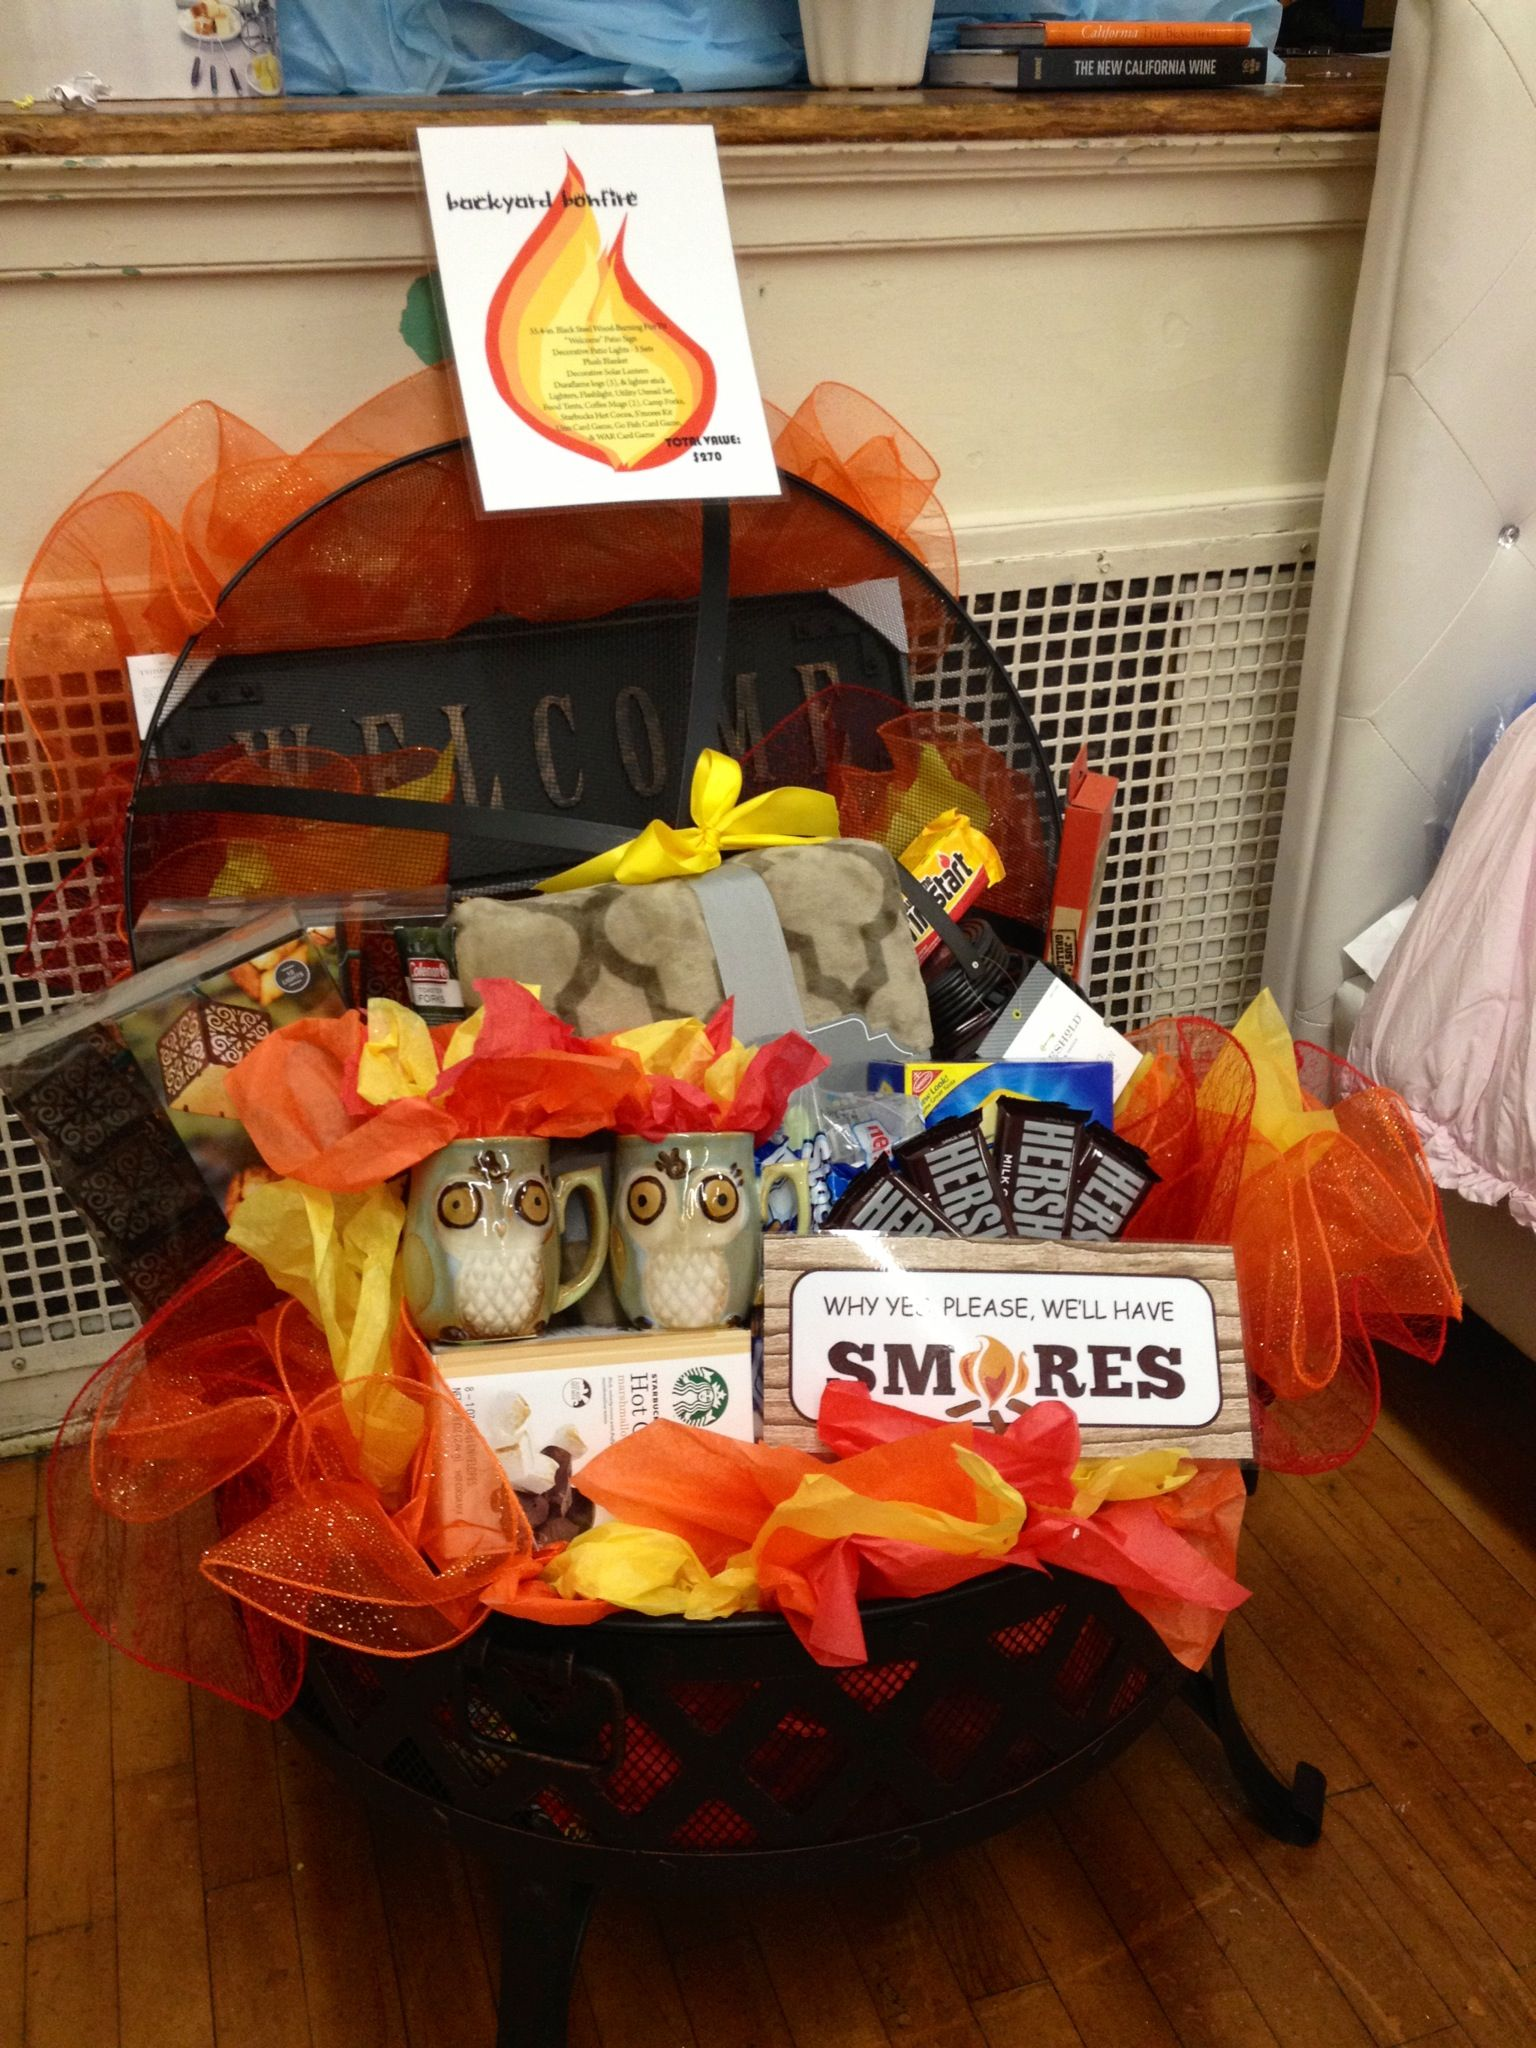 fire pit auction basket | auction basket ideas | auction baskets